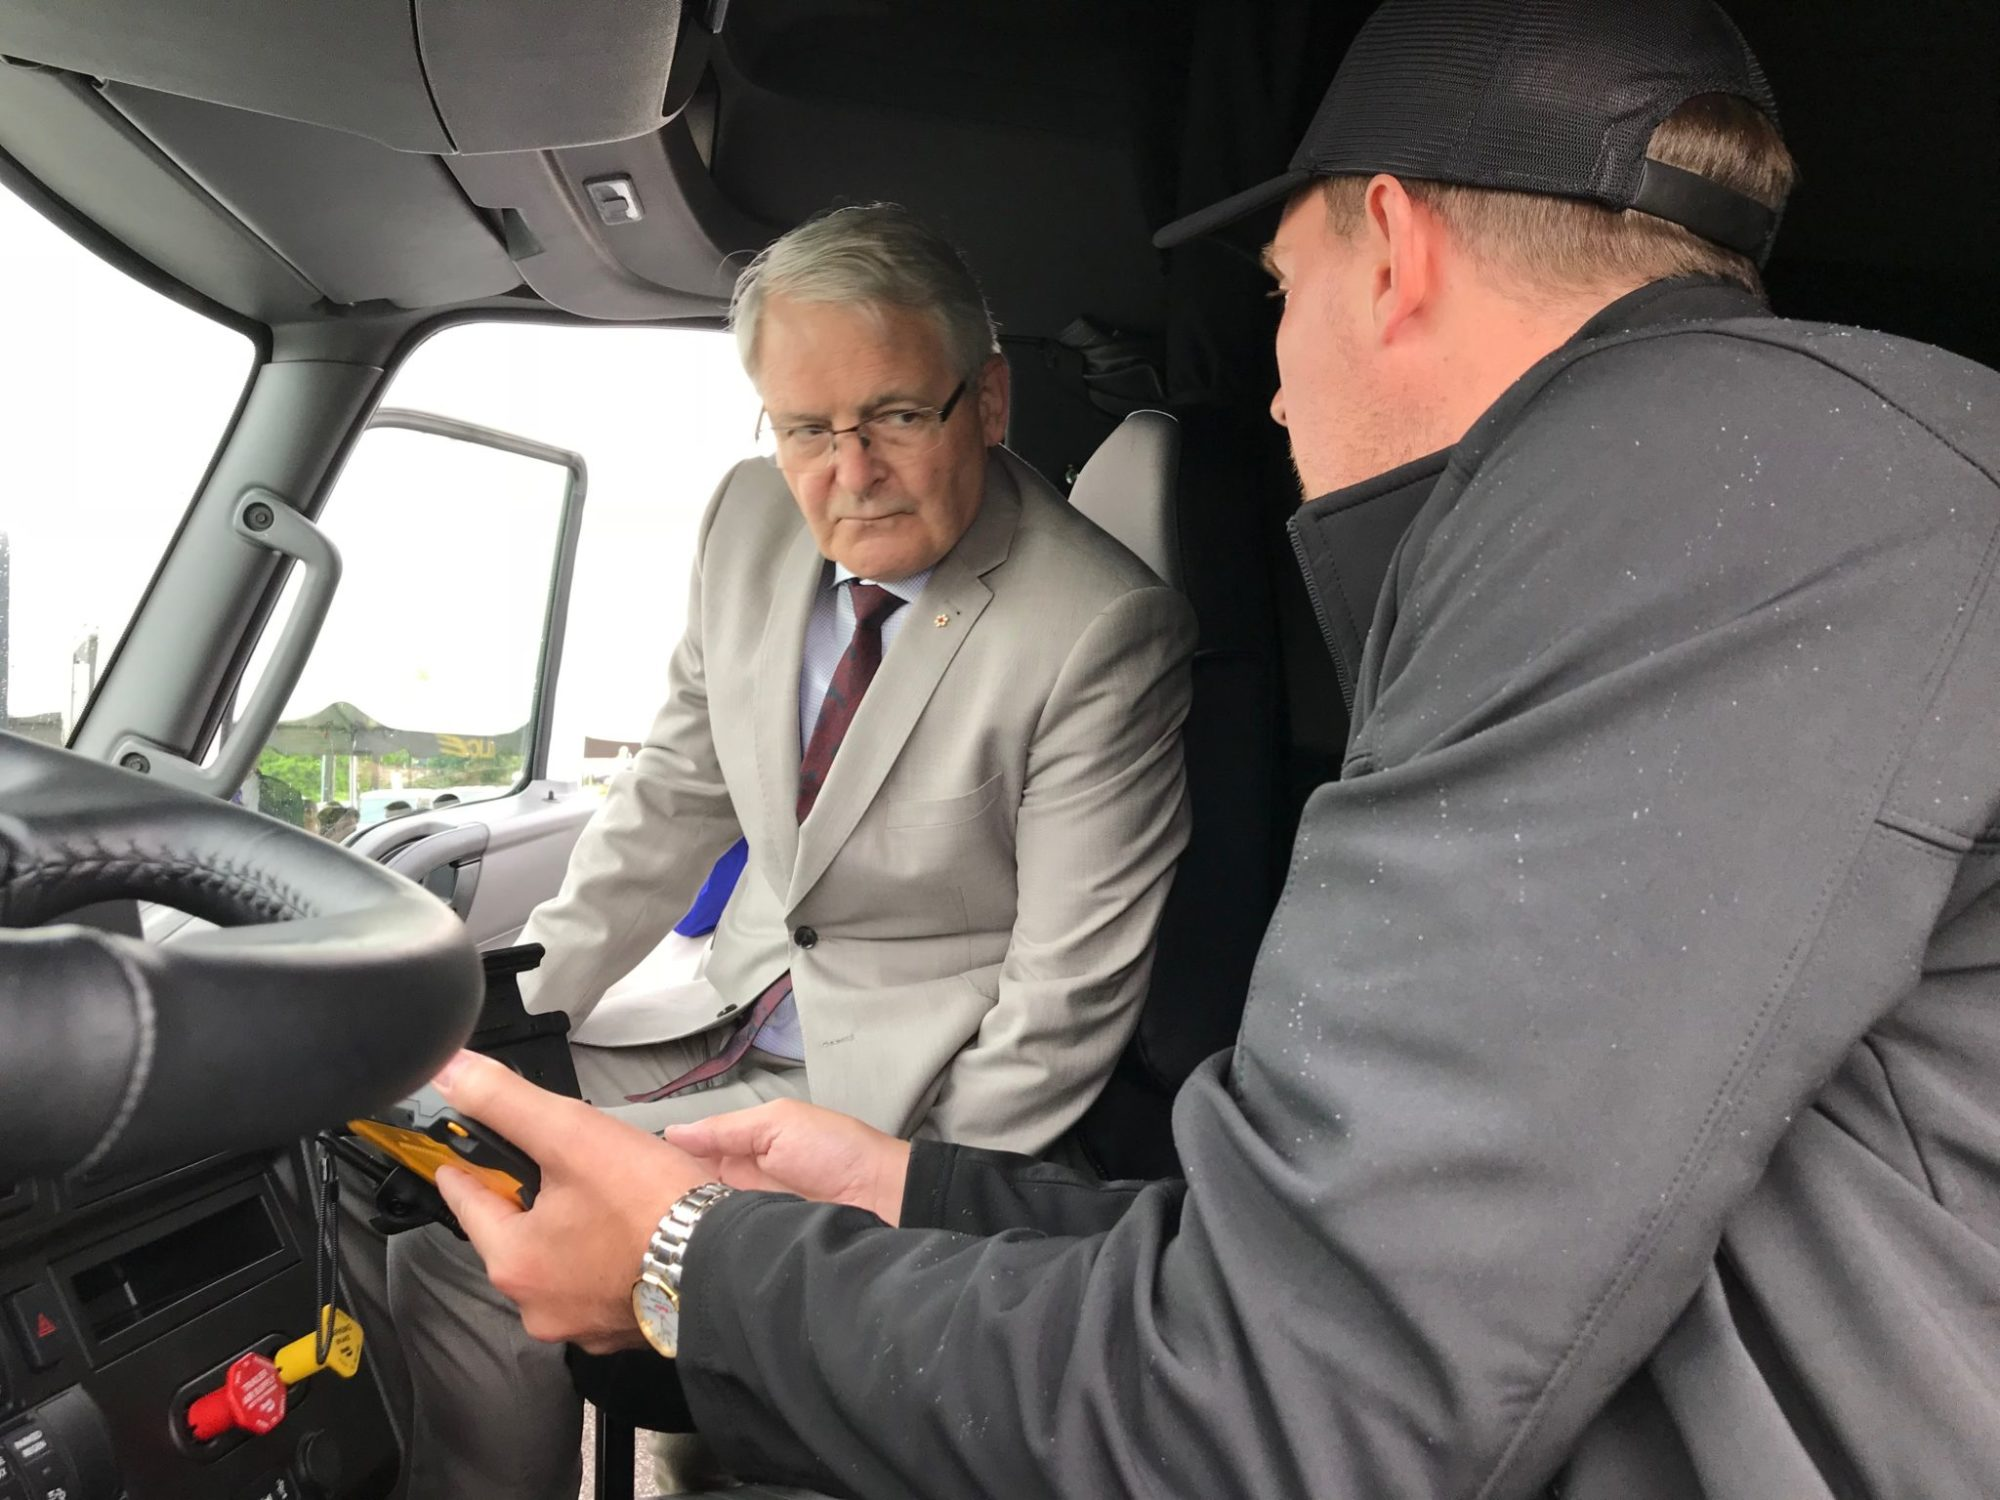 Federal Transport Minister Marc Garneau views an ELD that will track truck driver hours of service